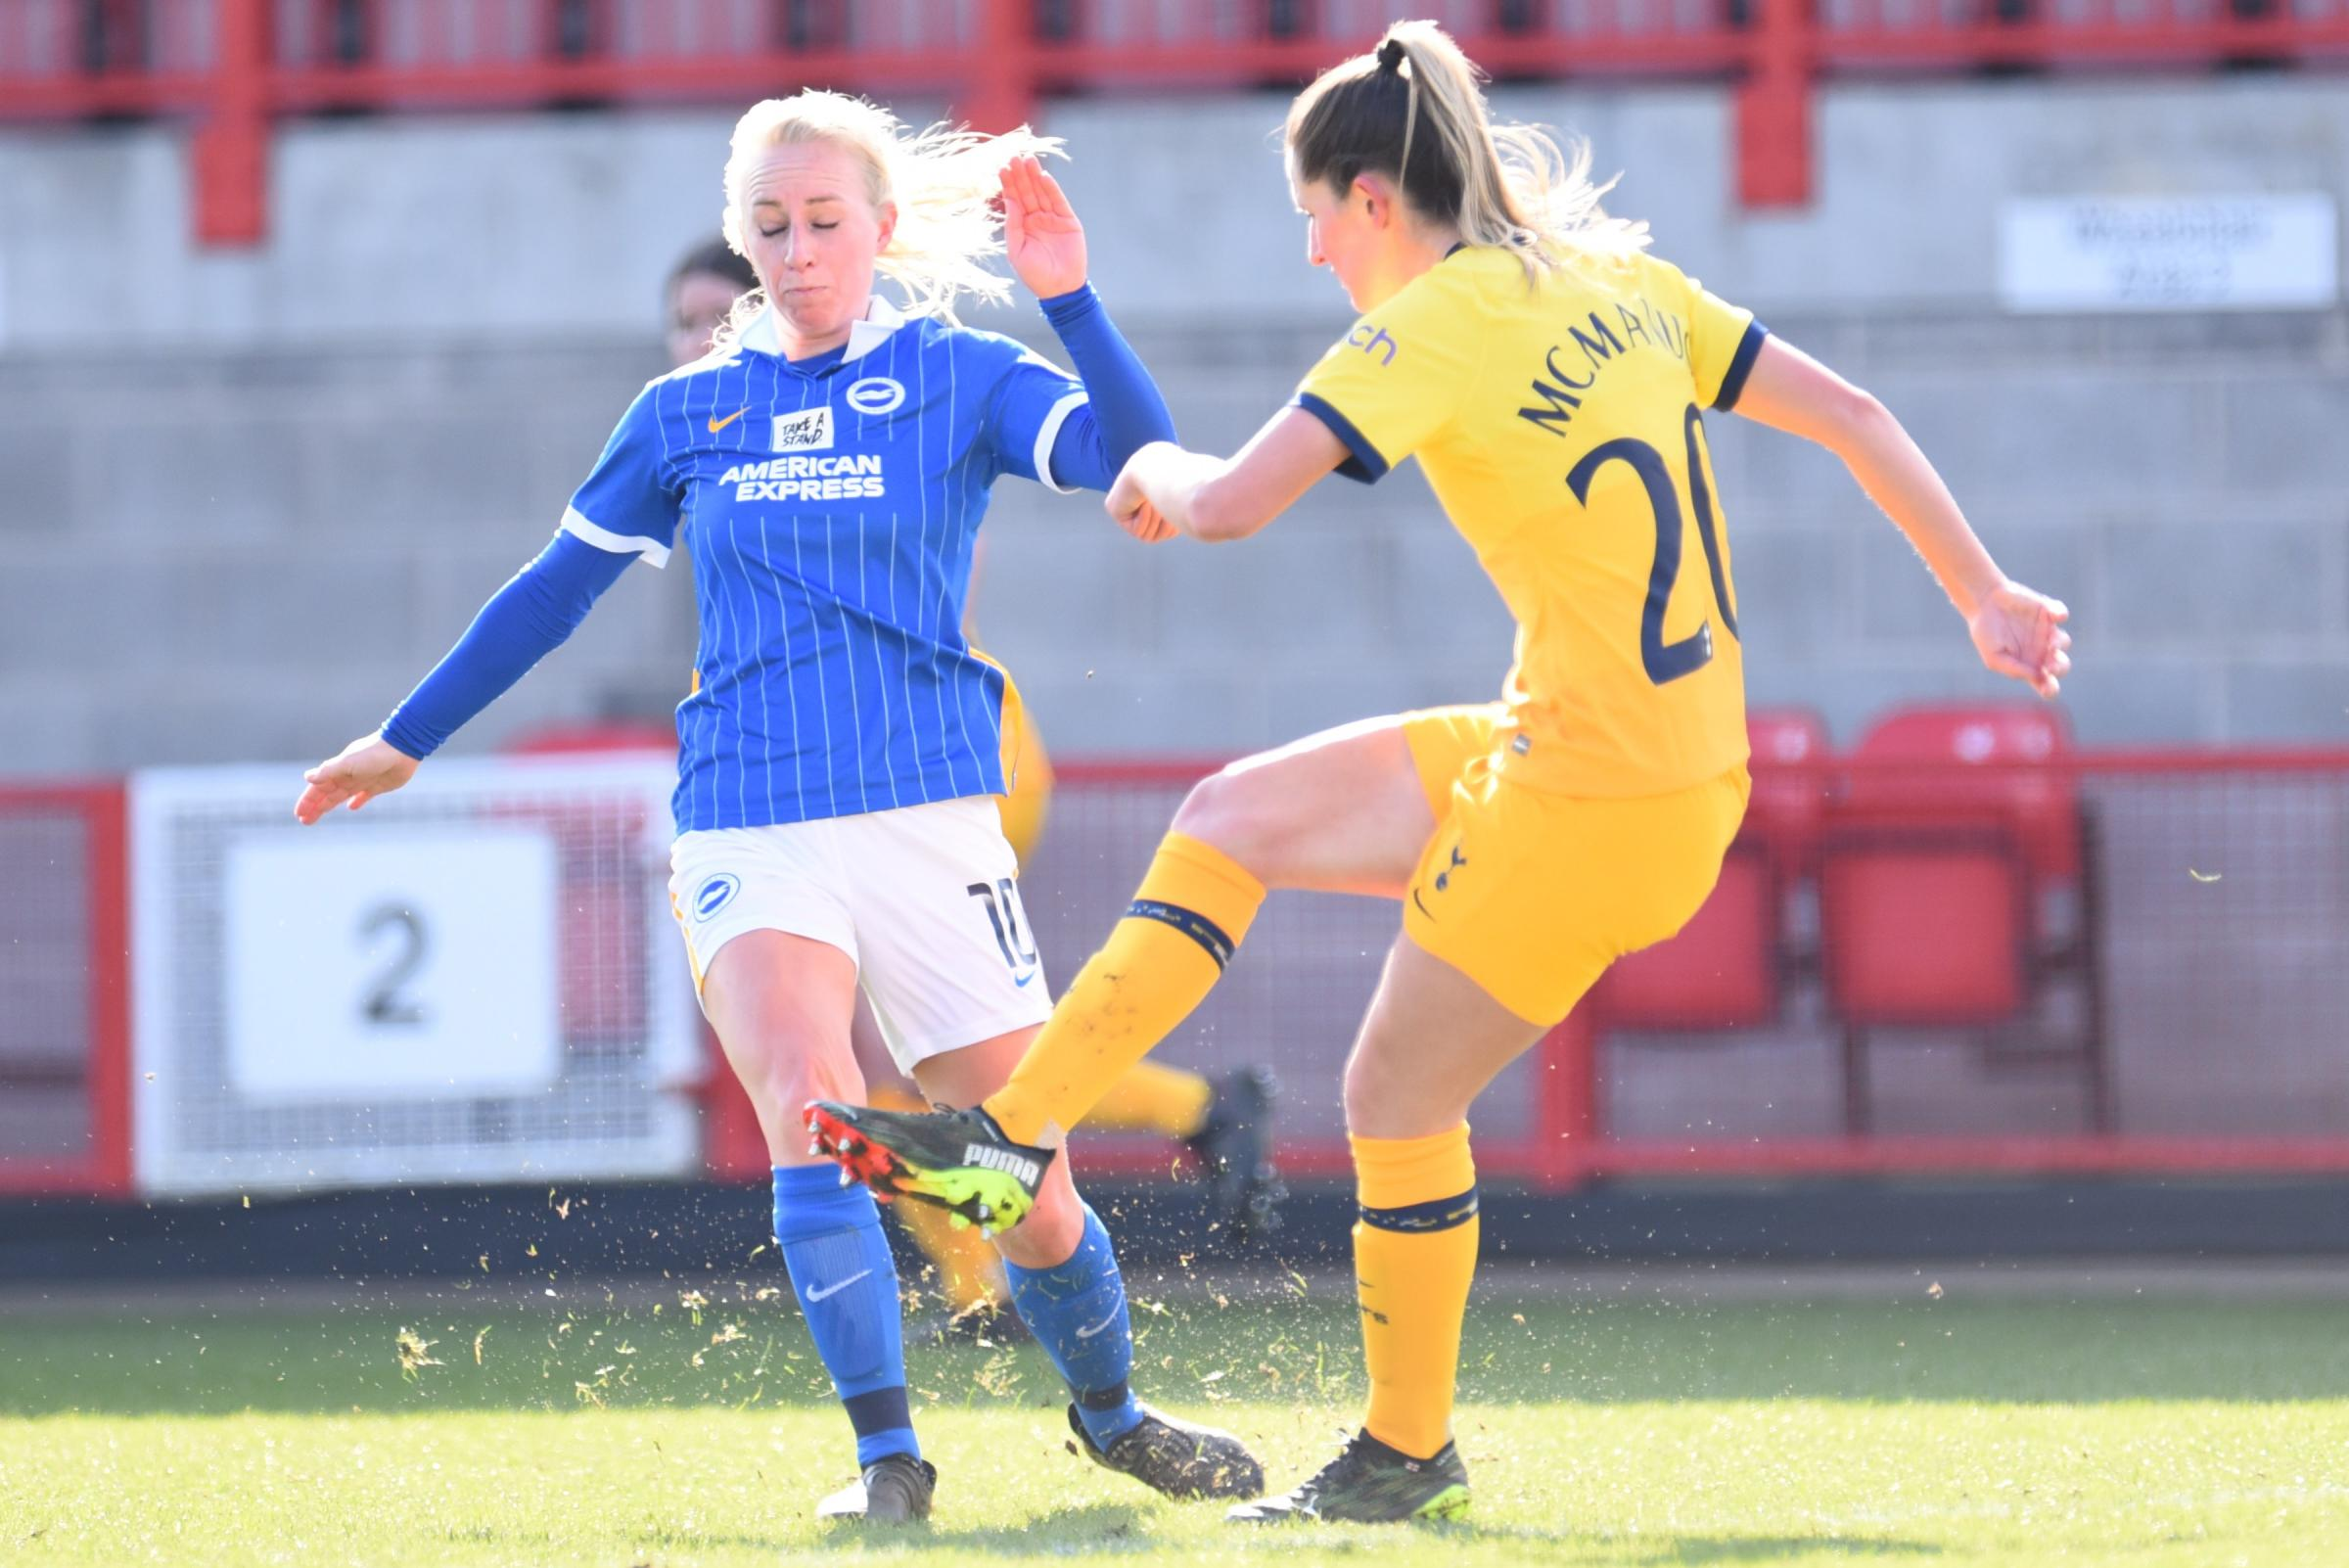 Inessa Kaagman signs new deal with Brighton